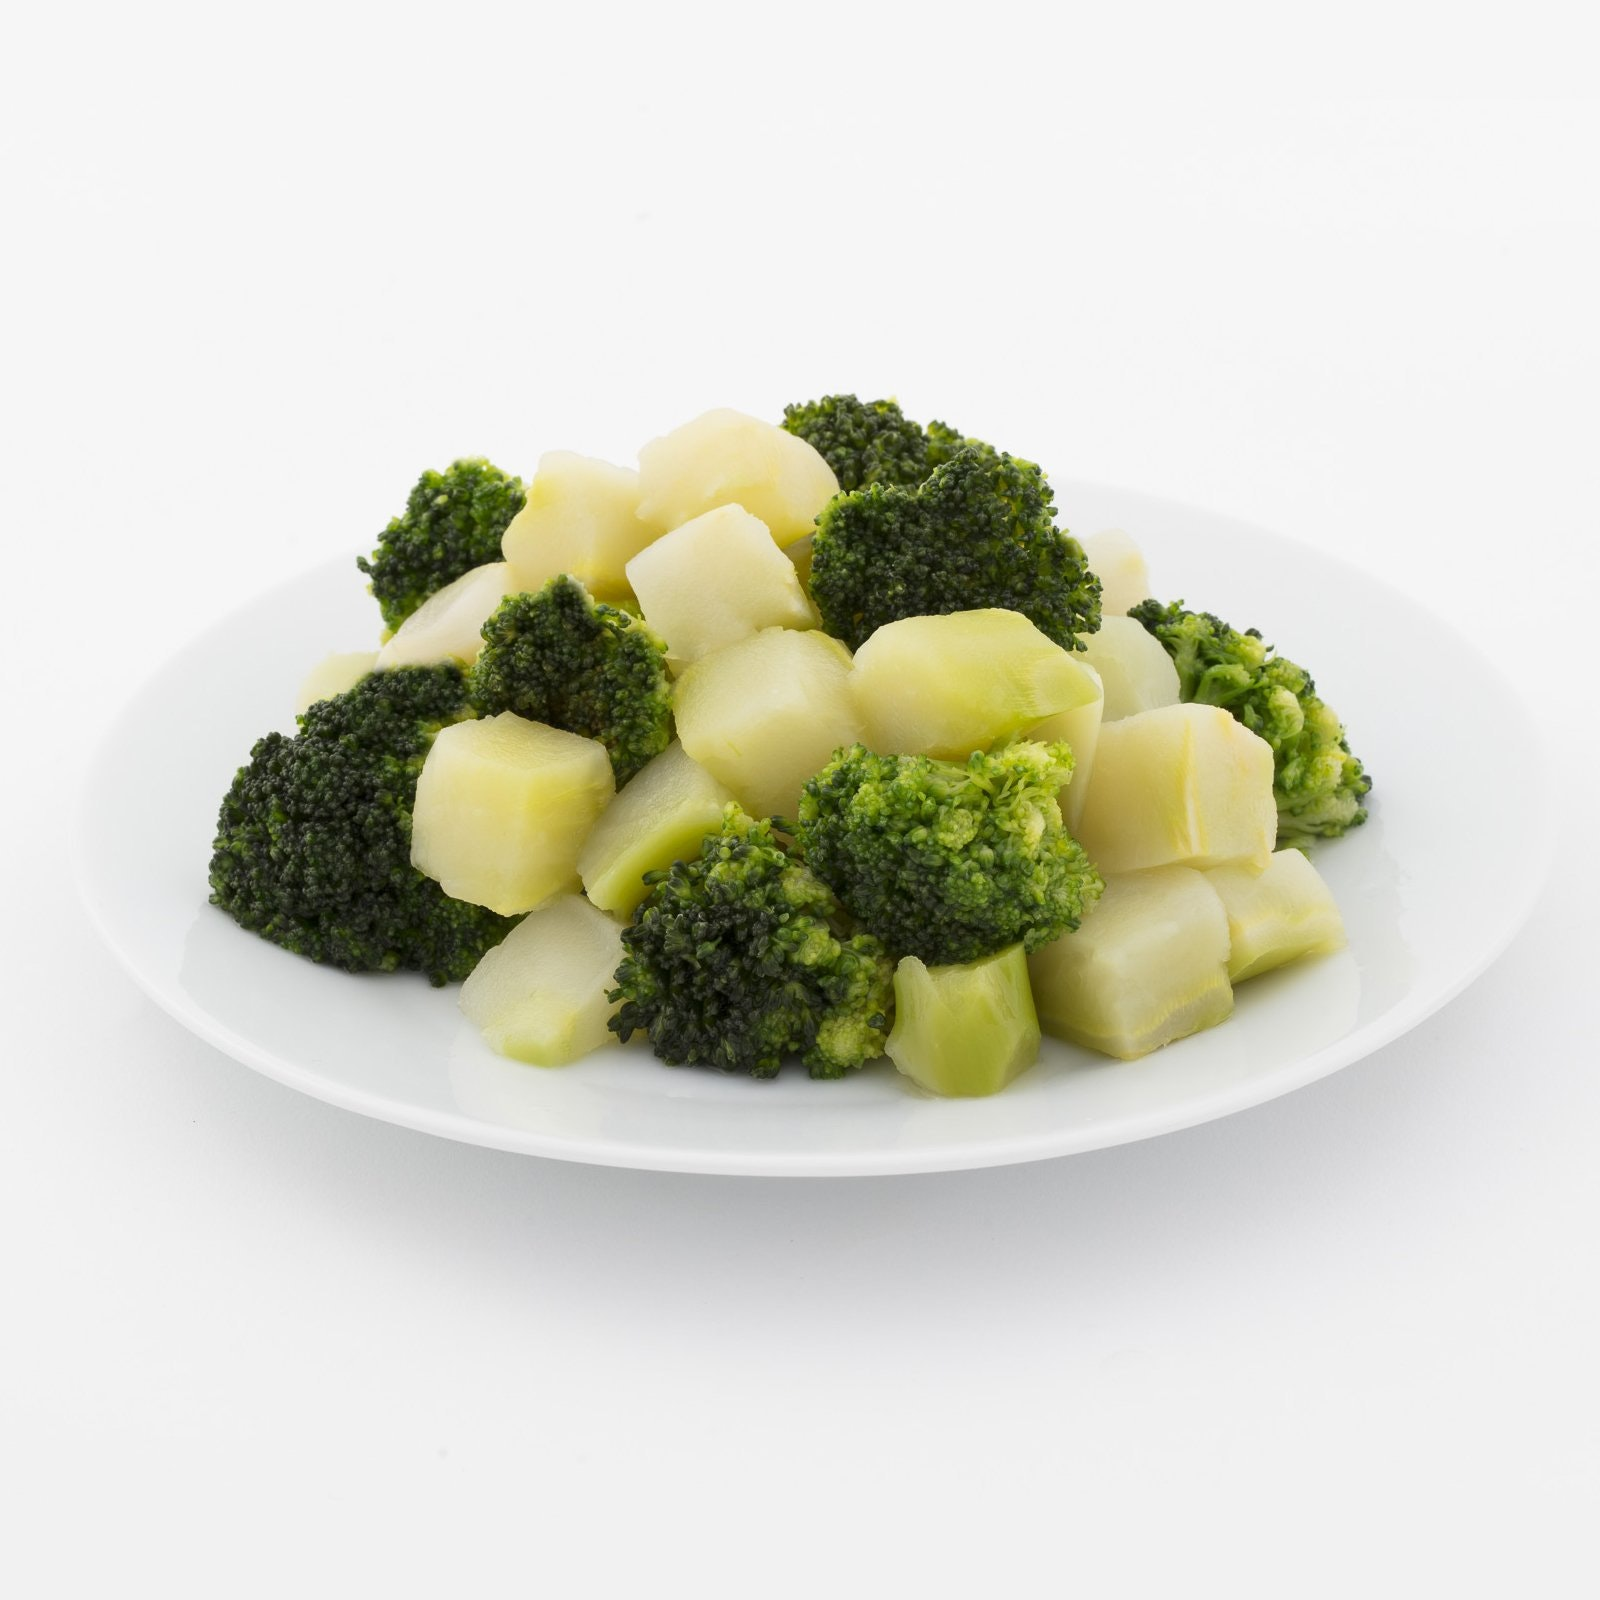 BELOW ZERO Broccoli cut